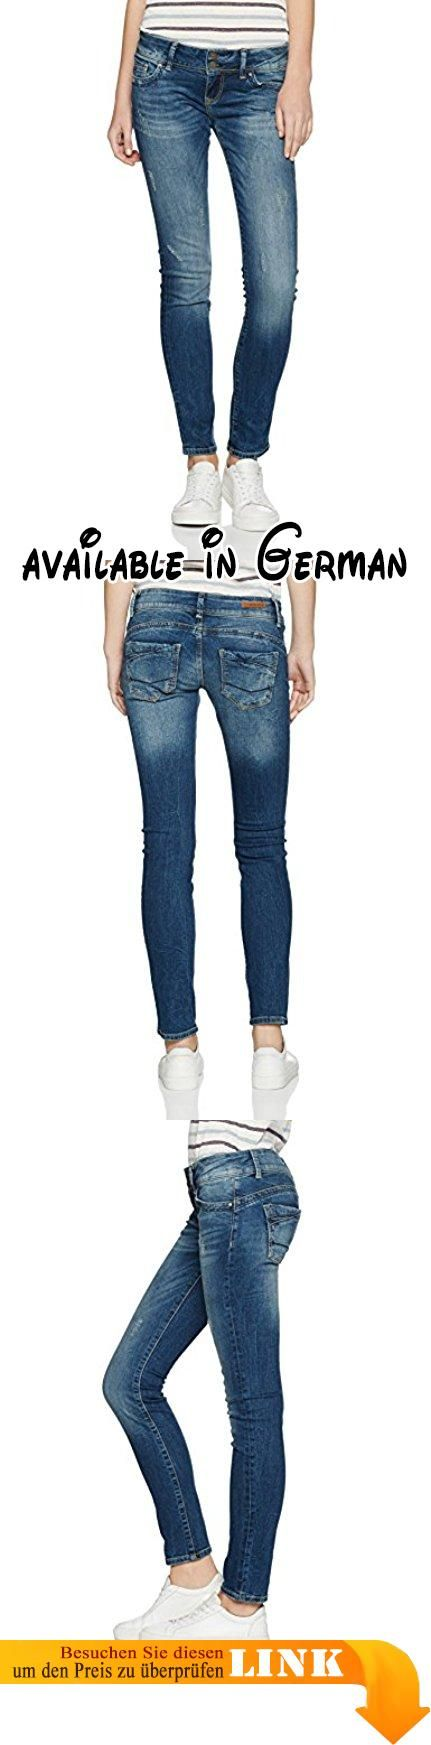 Cross Jeans Damen Skinny Jeans Melissa Blau (Dirty Blue 126), W30/L34 (Herstellergröße:30/34). figurbetonende Skinny Damenjeans. Weicher, stretchiger Denim #Apparel #PANTS